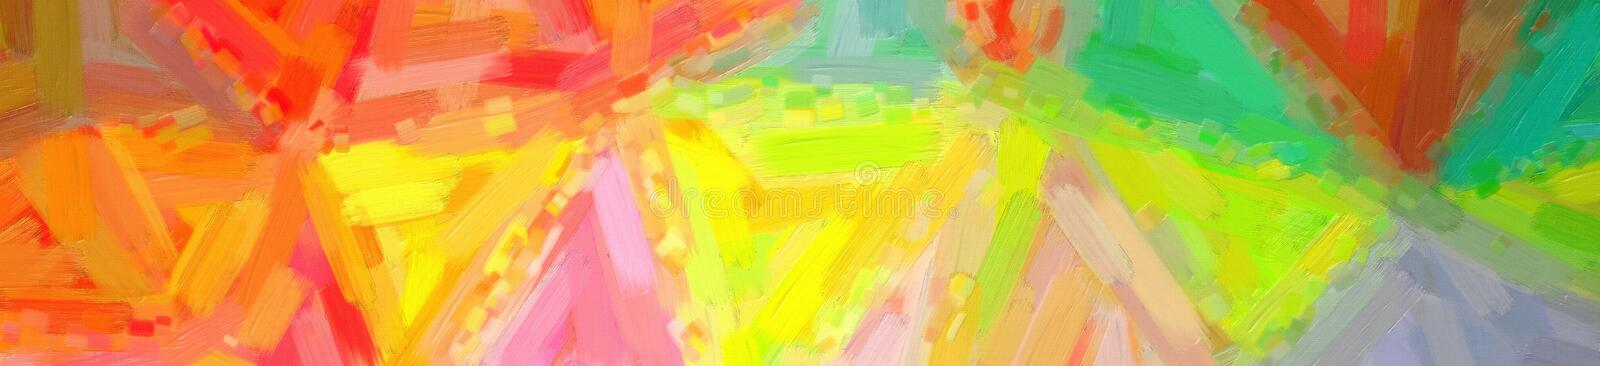 Illustration of yellow, red and blue Oil Paint with big brush background, abstract banner royalty free stock image